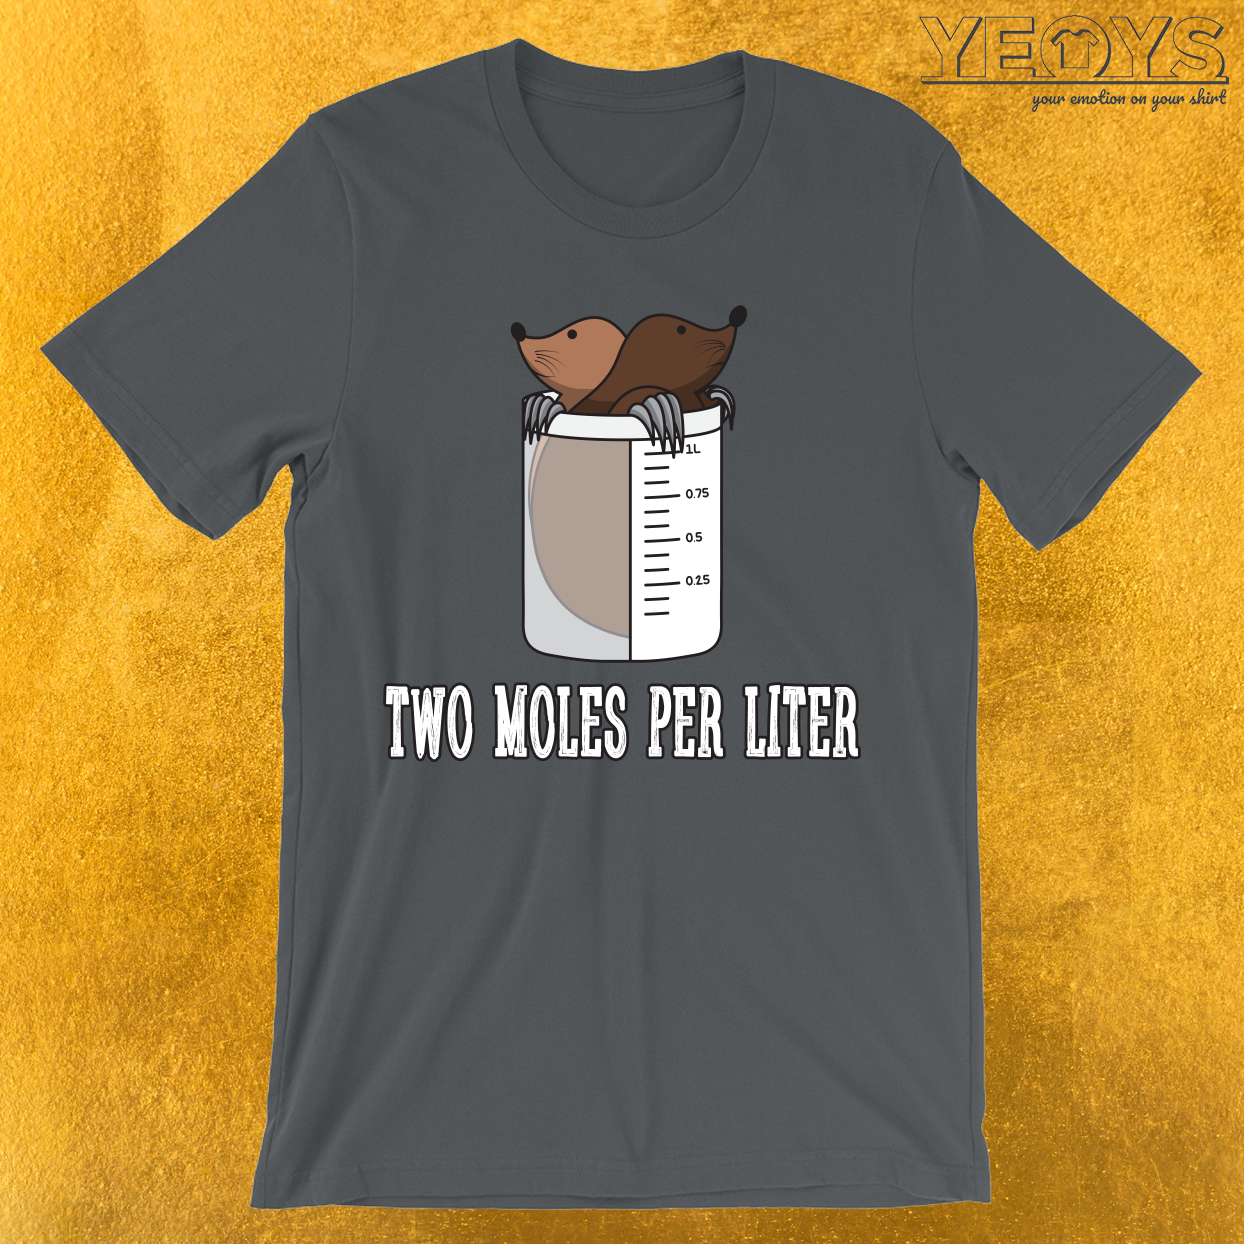 Two Moles Per Liter T-Shirt